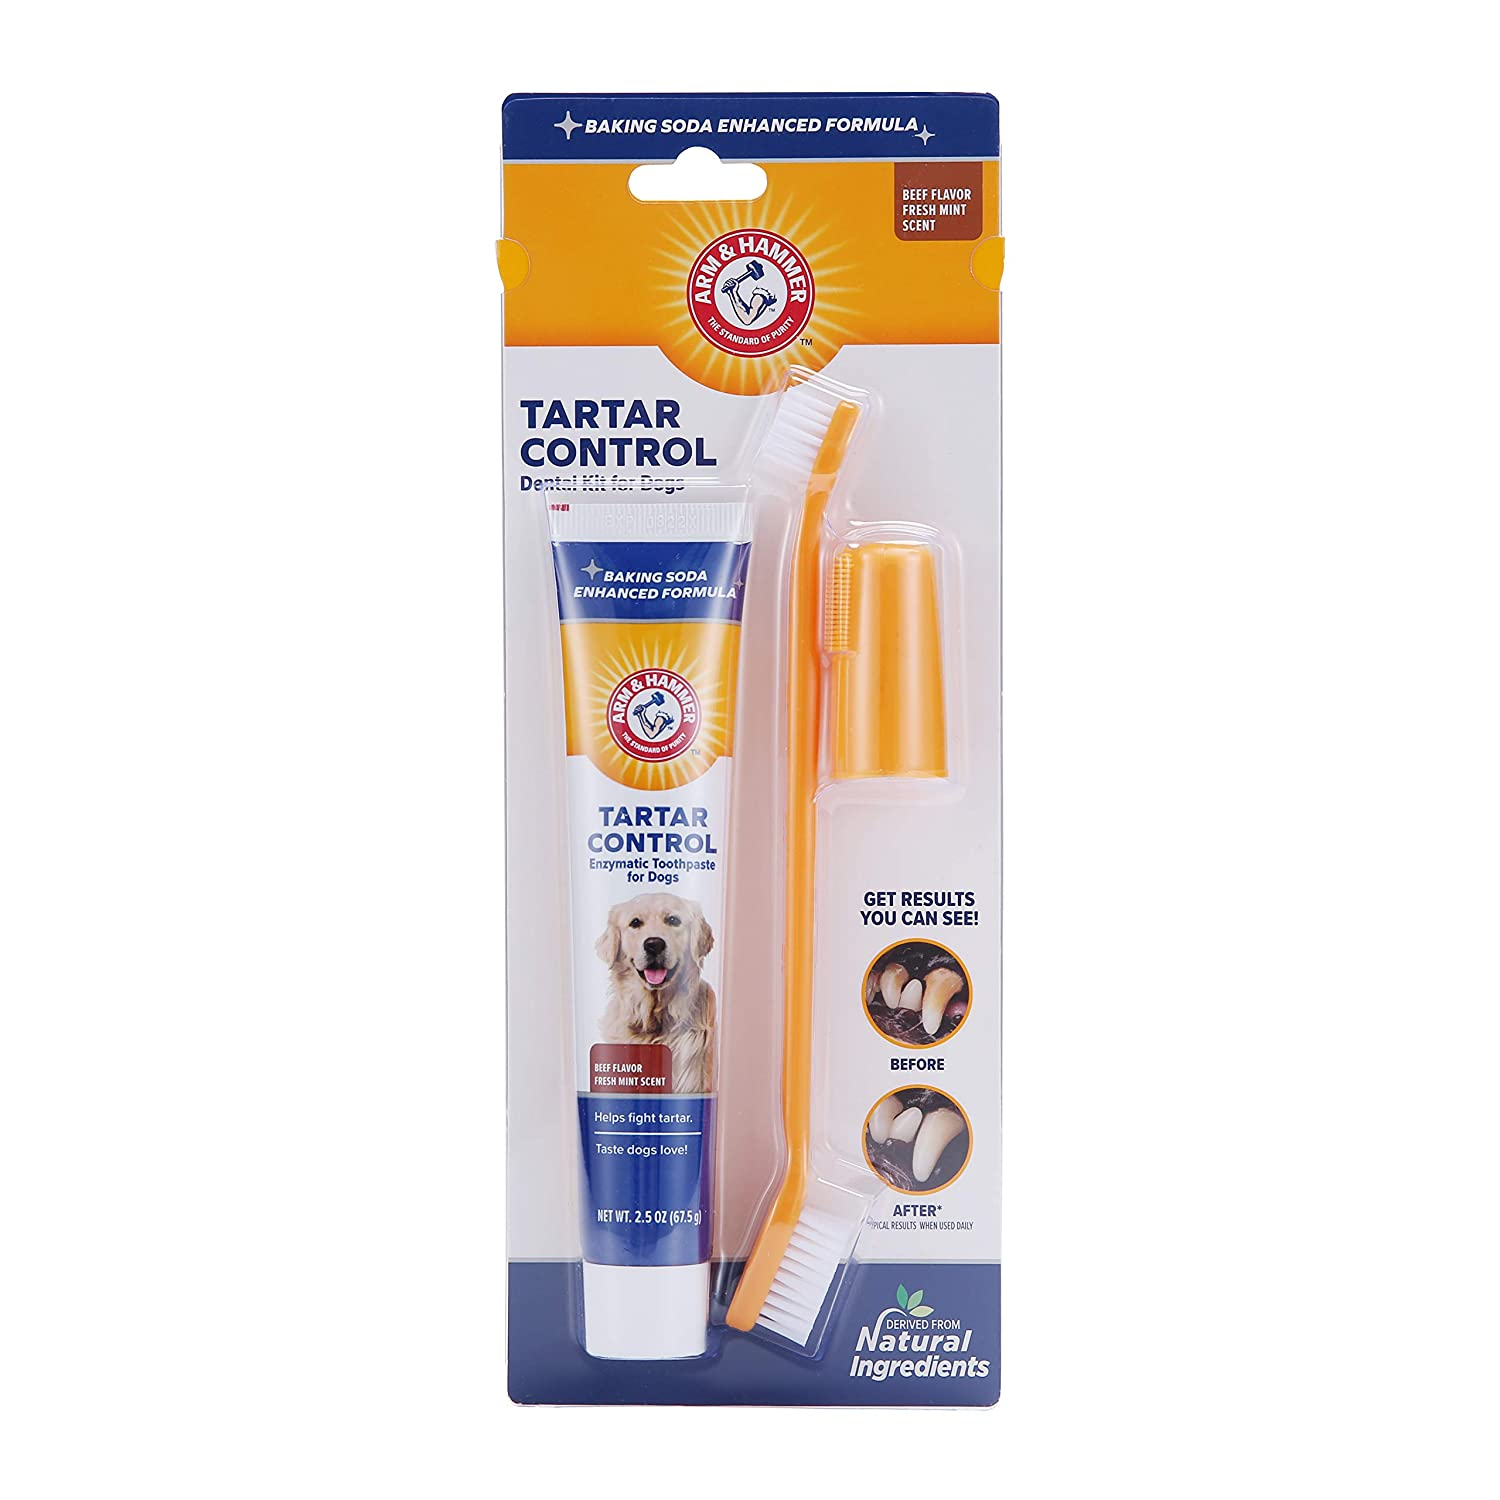 Arm & Hammer Dog Dental Care Tartar Control Kit for Dogs